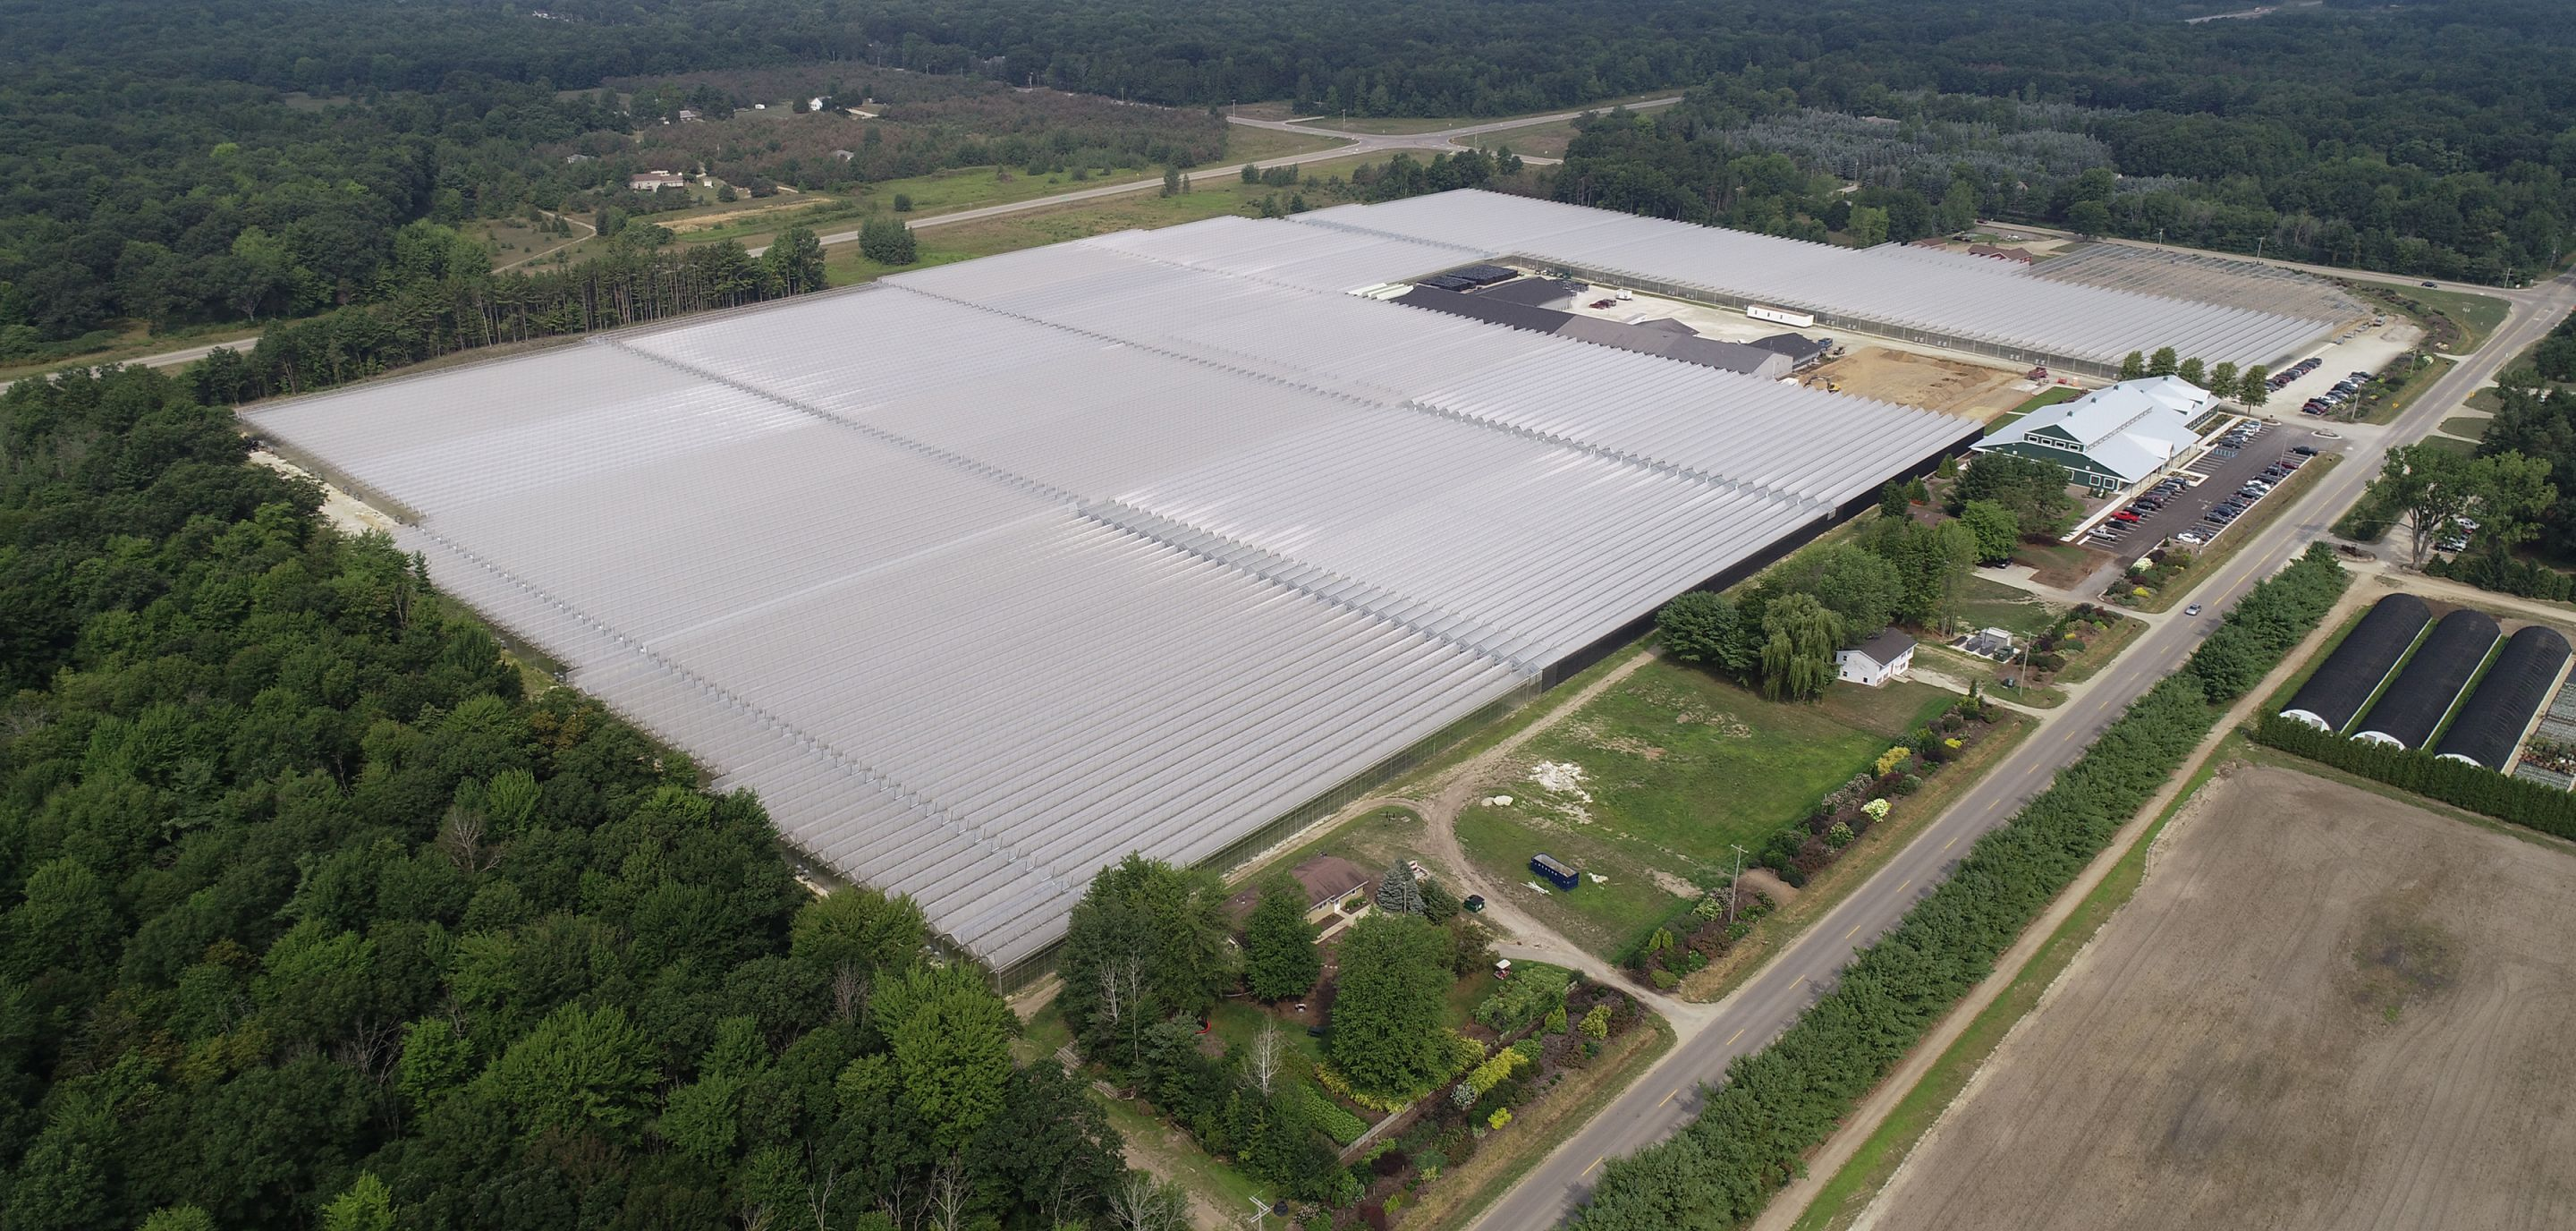 2018 Aerial View Of Spring Meadow Nursery